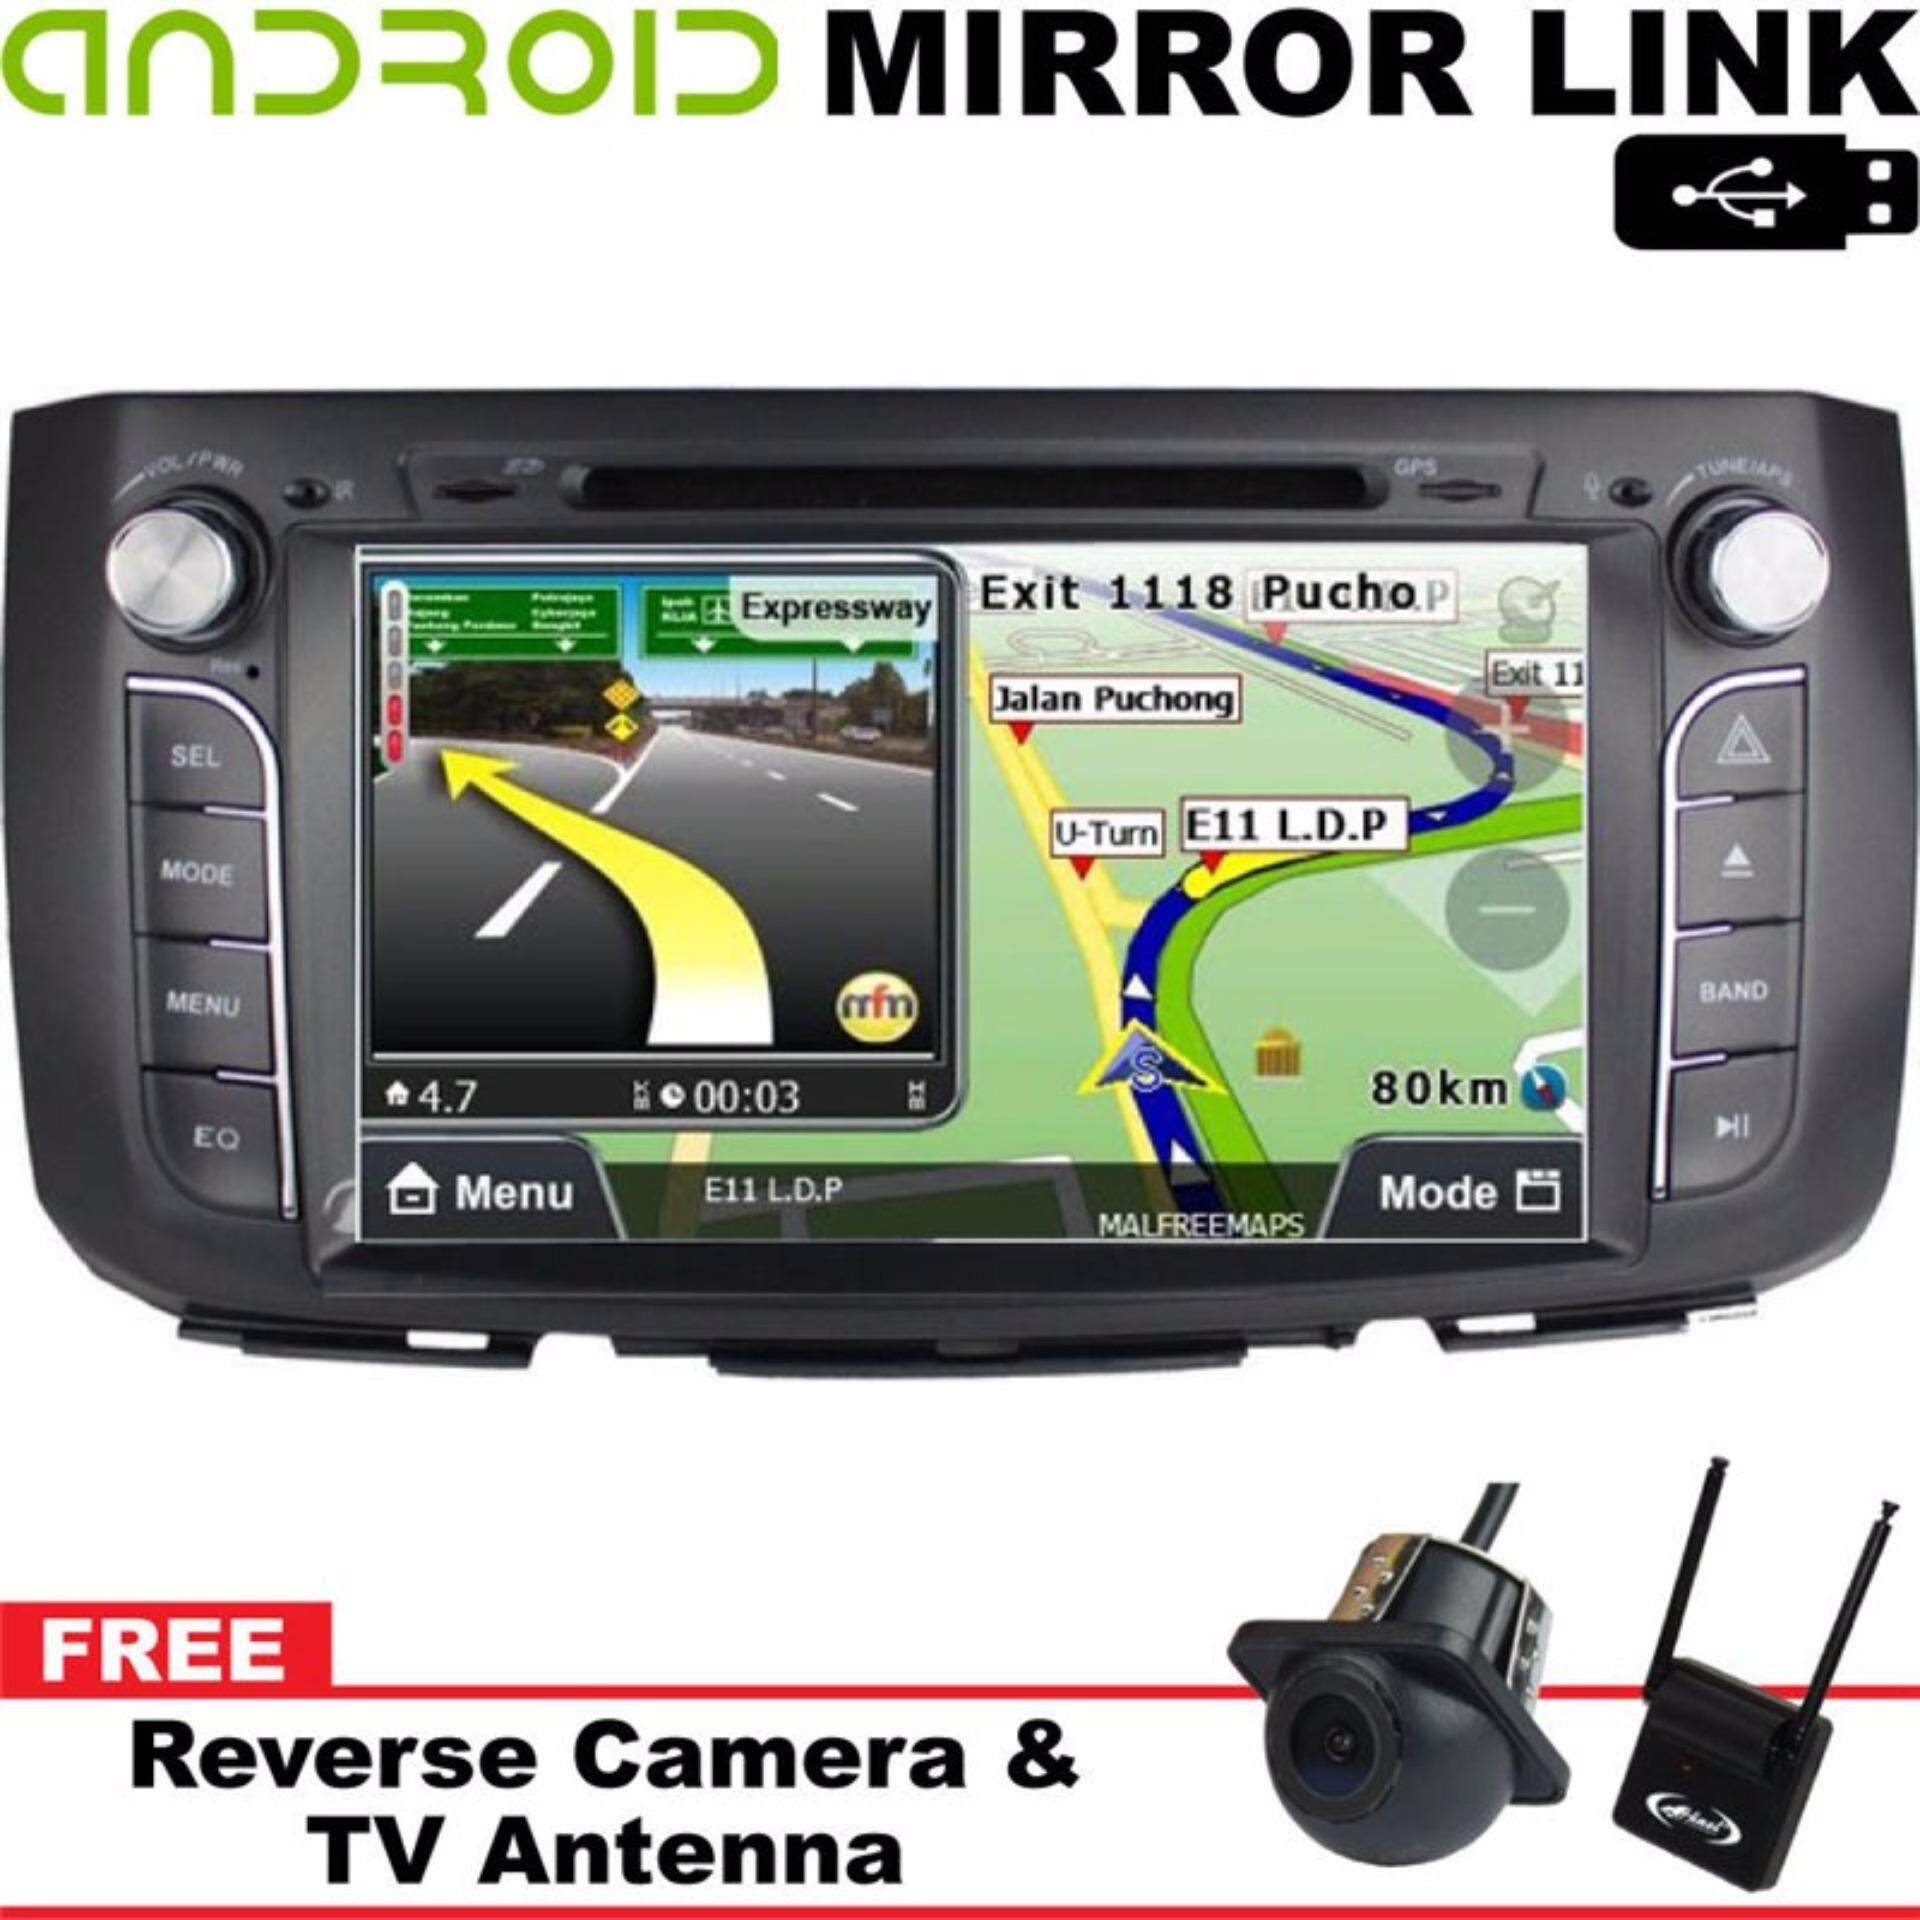 PERODUA ALZA DLAA 9 Android Mirror Link Double Din GPS DVD MP3 CD USB SD BT TV Player Free Camera & TV Antenna""